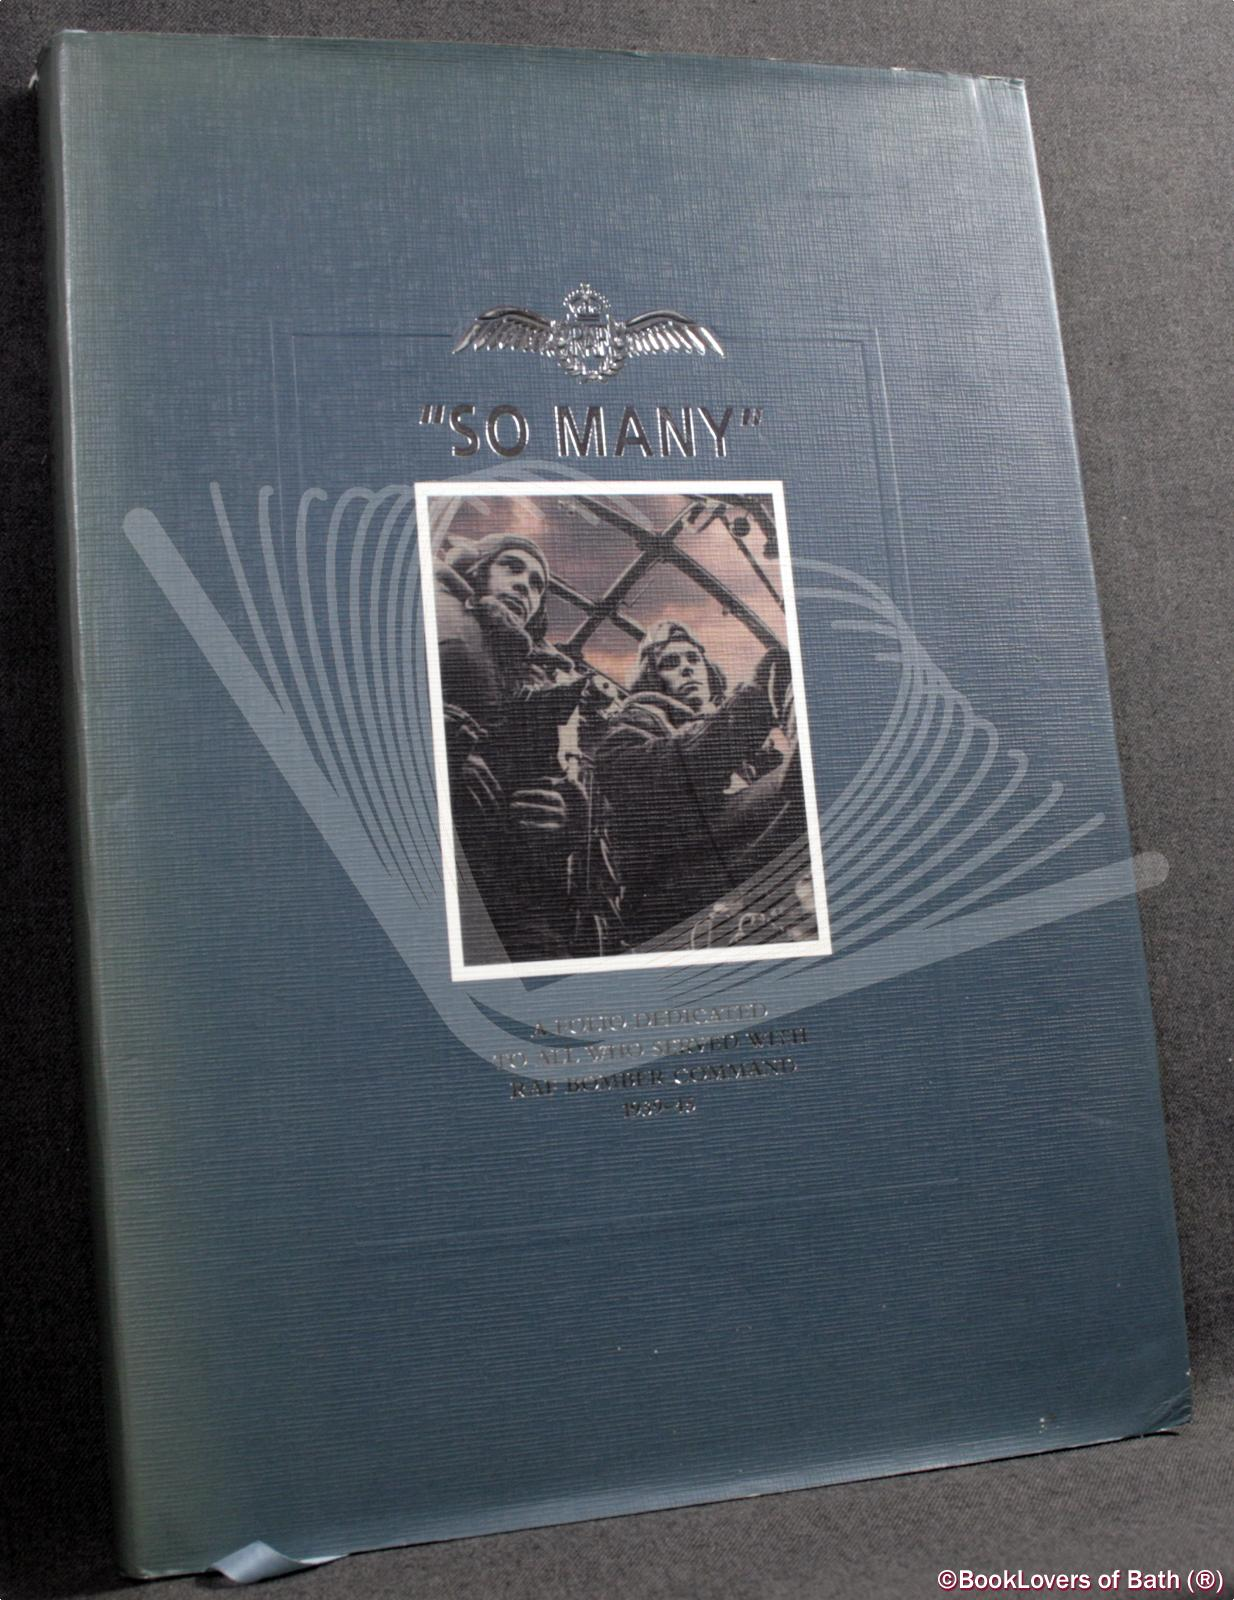 So Many: A Folio Dedicated to All Who Served with RAF Bomber Command 1939-45 - Edited by Bill Gunston